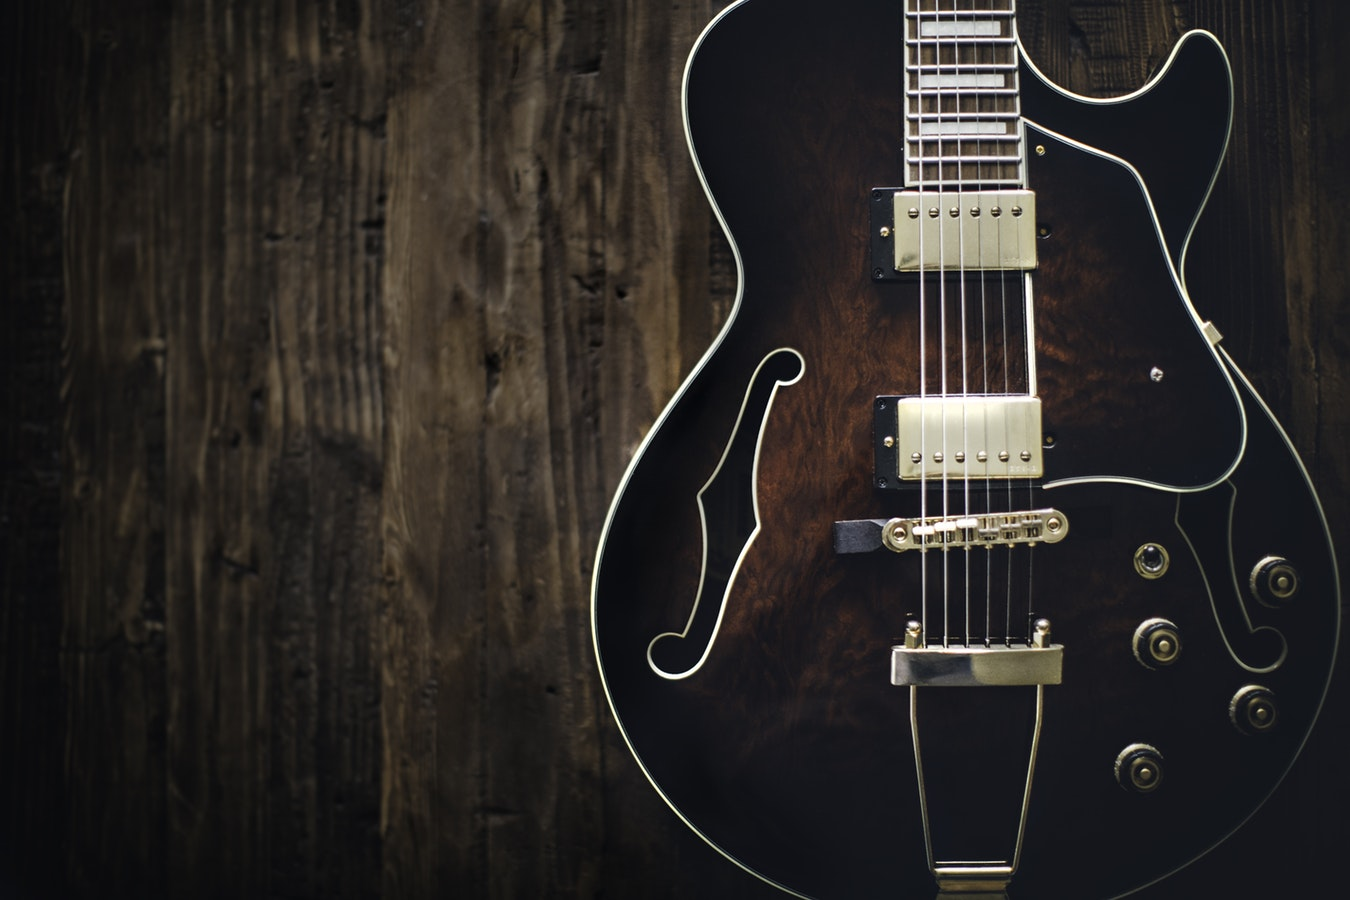 dark wood colored guitar leaning on wall